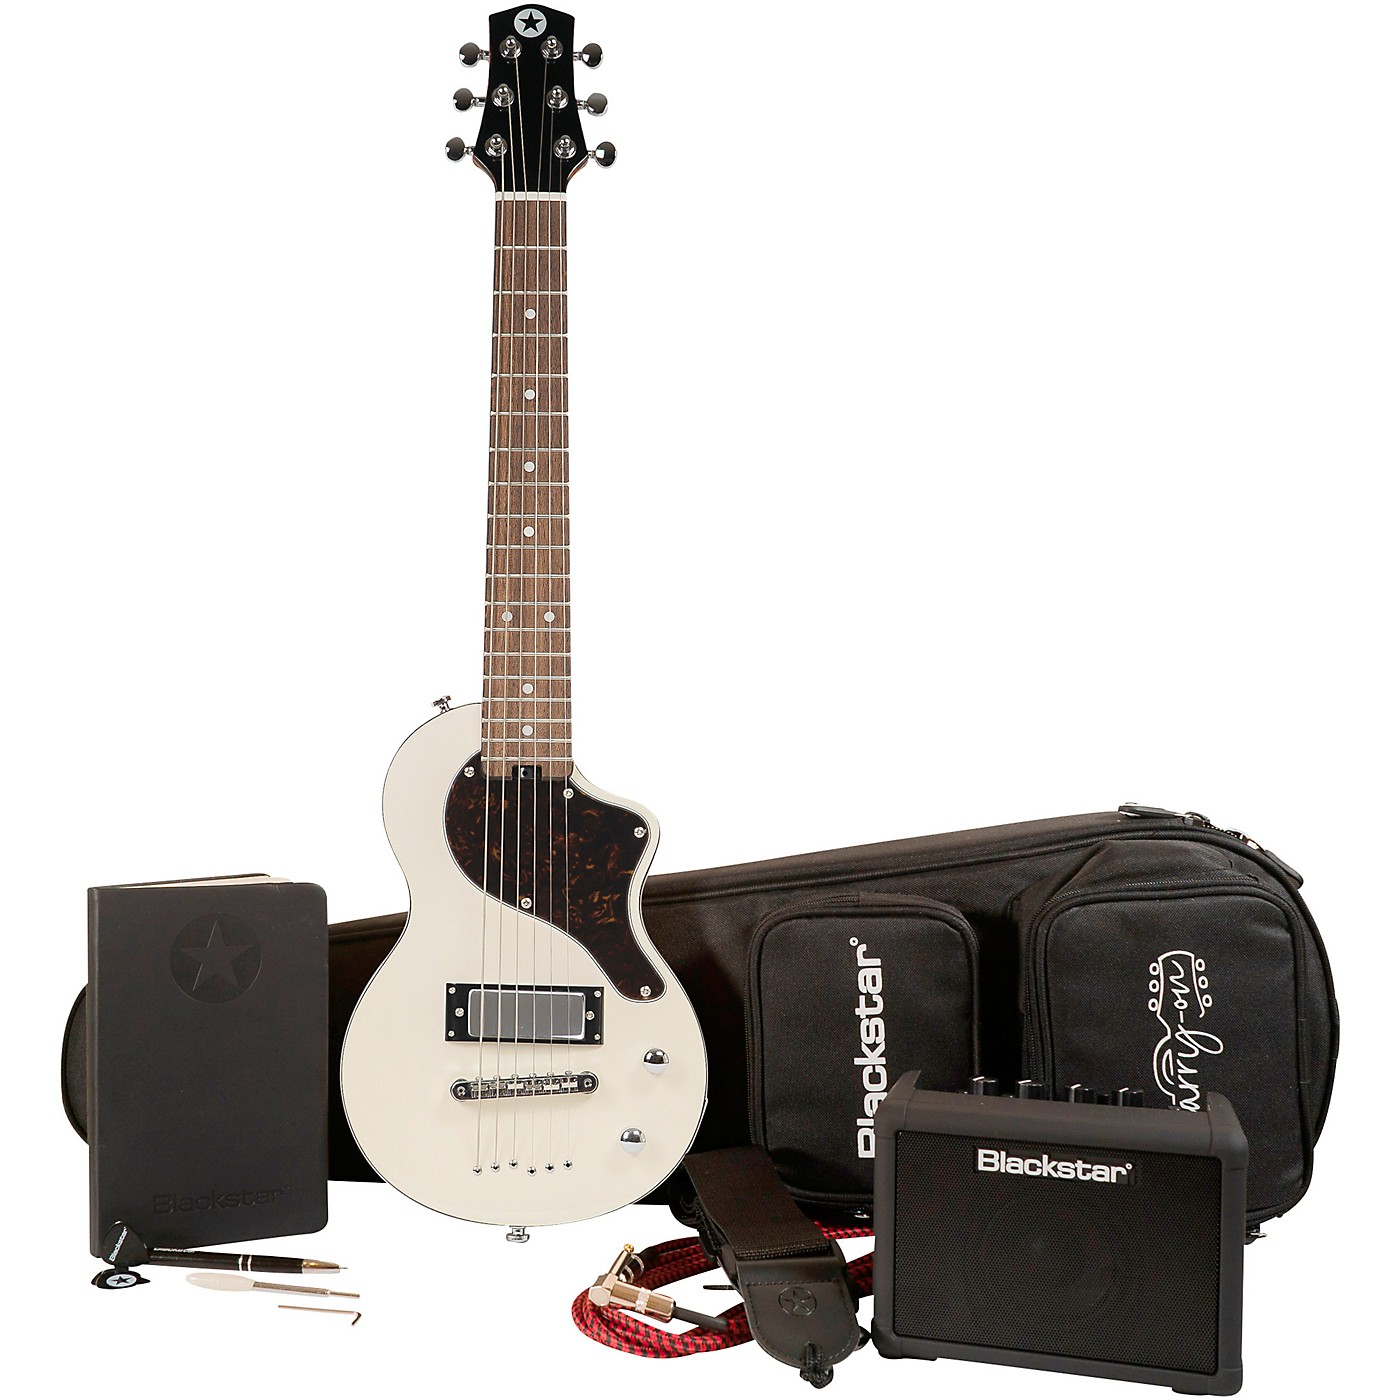 Blackstar CarryOn Travel Guitar Deluxe Pack with FLY3 thumbnail